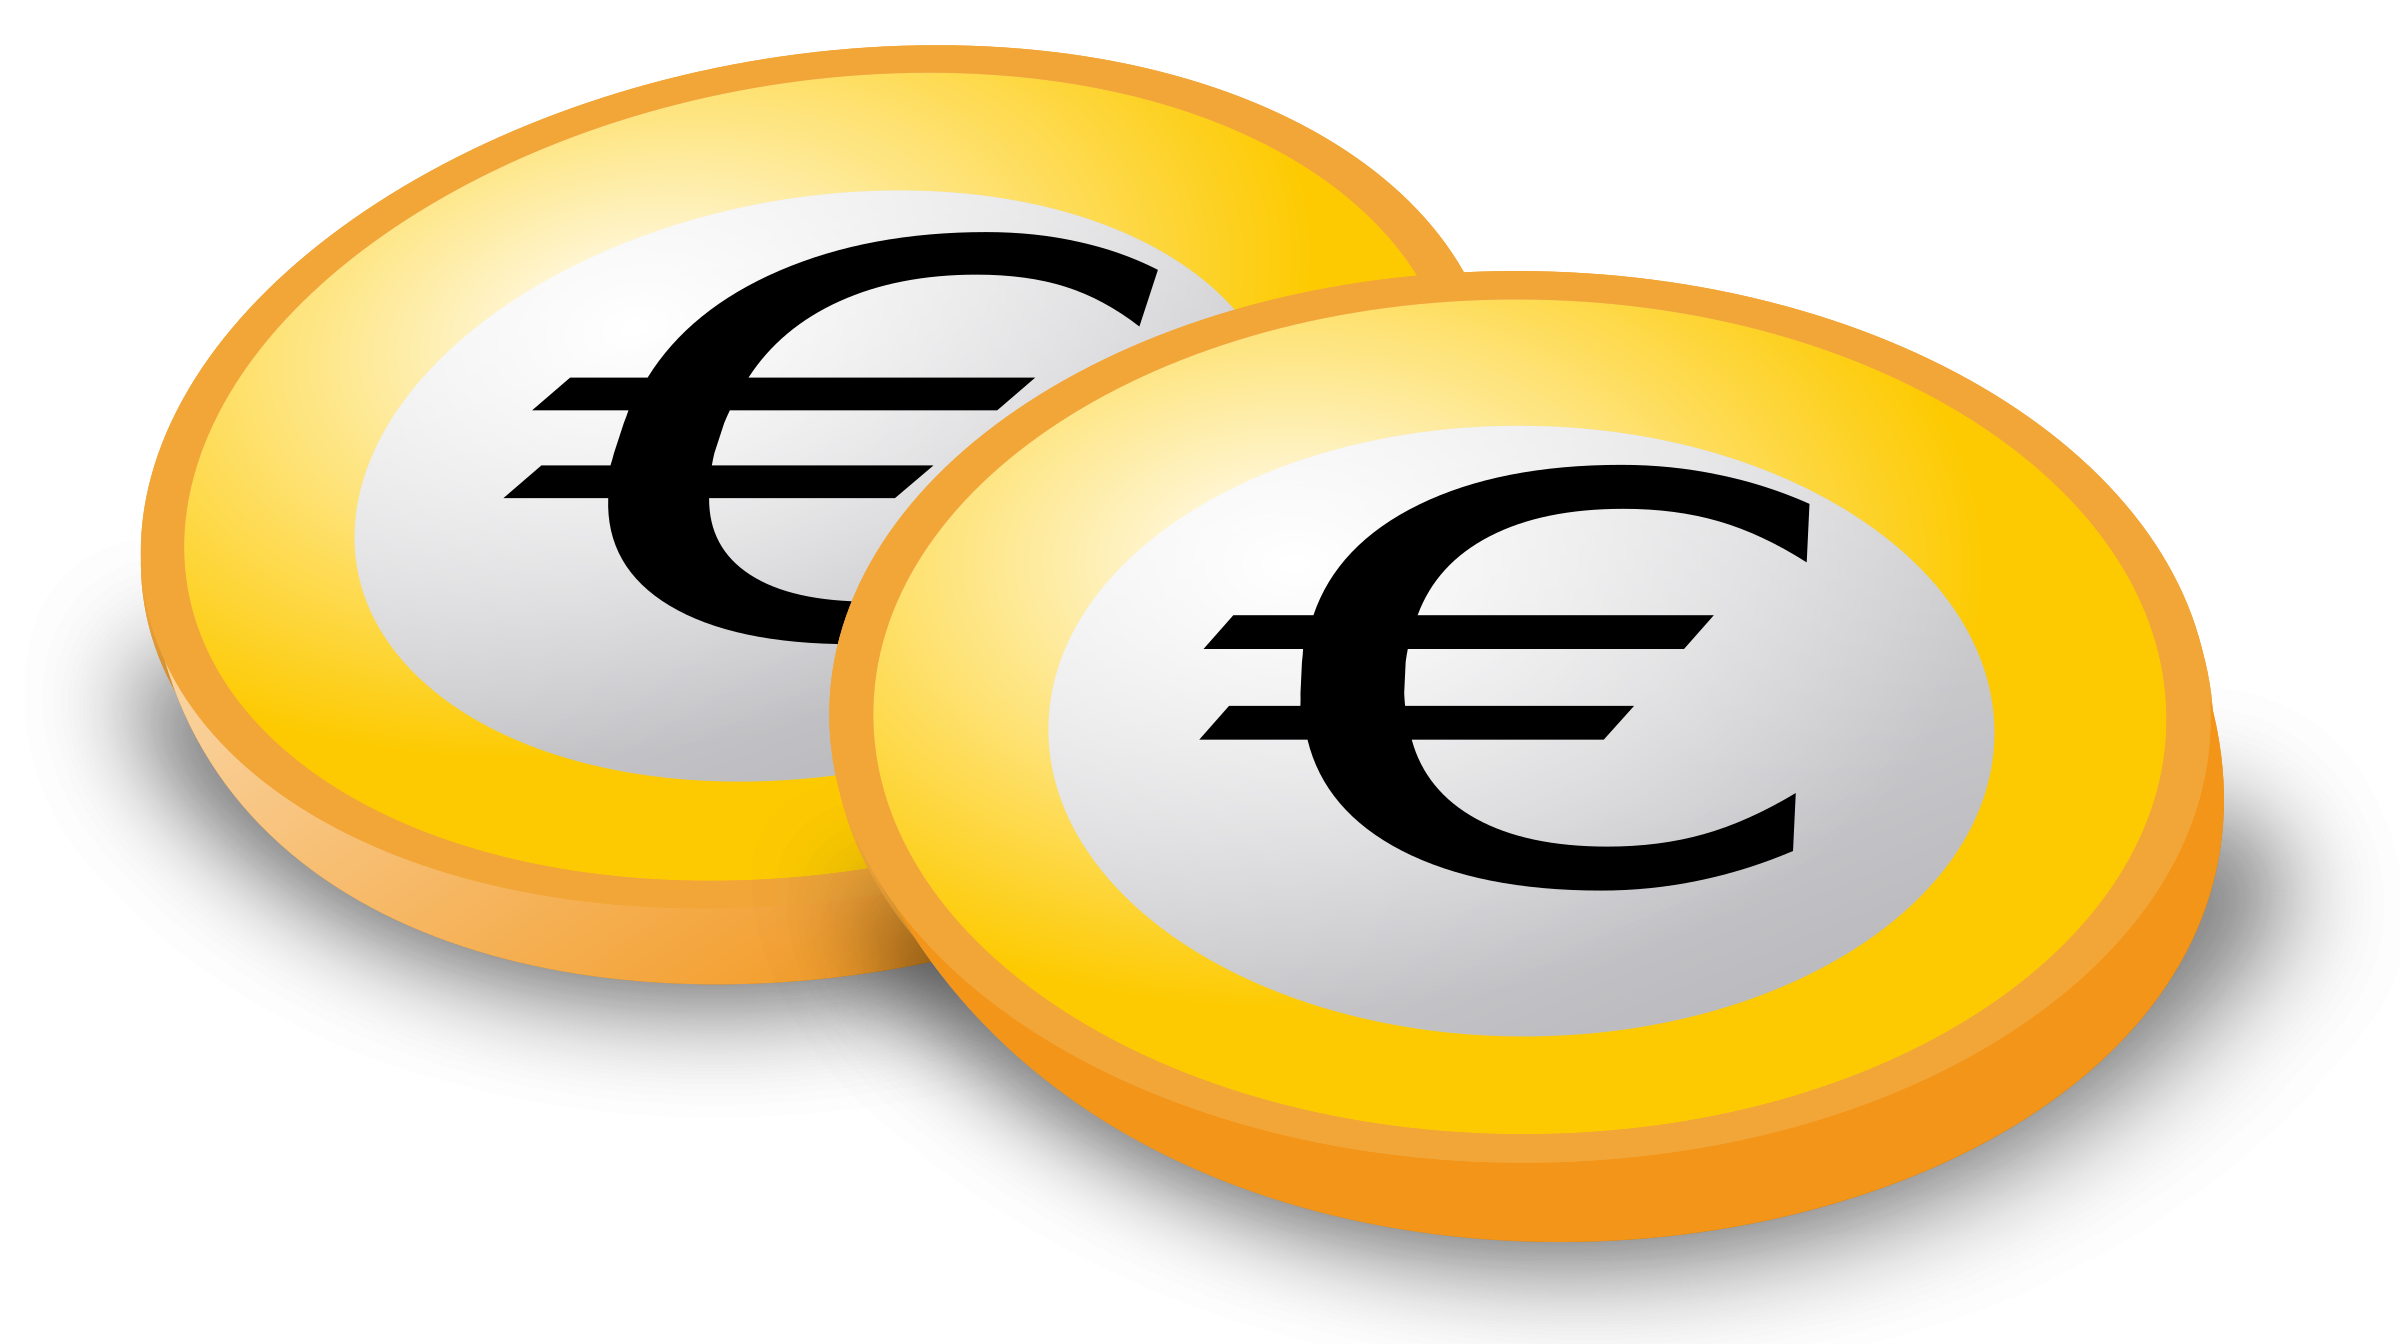 Euro Coins by laser_engravers